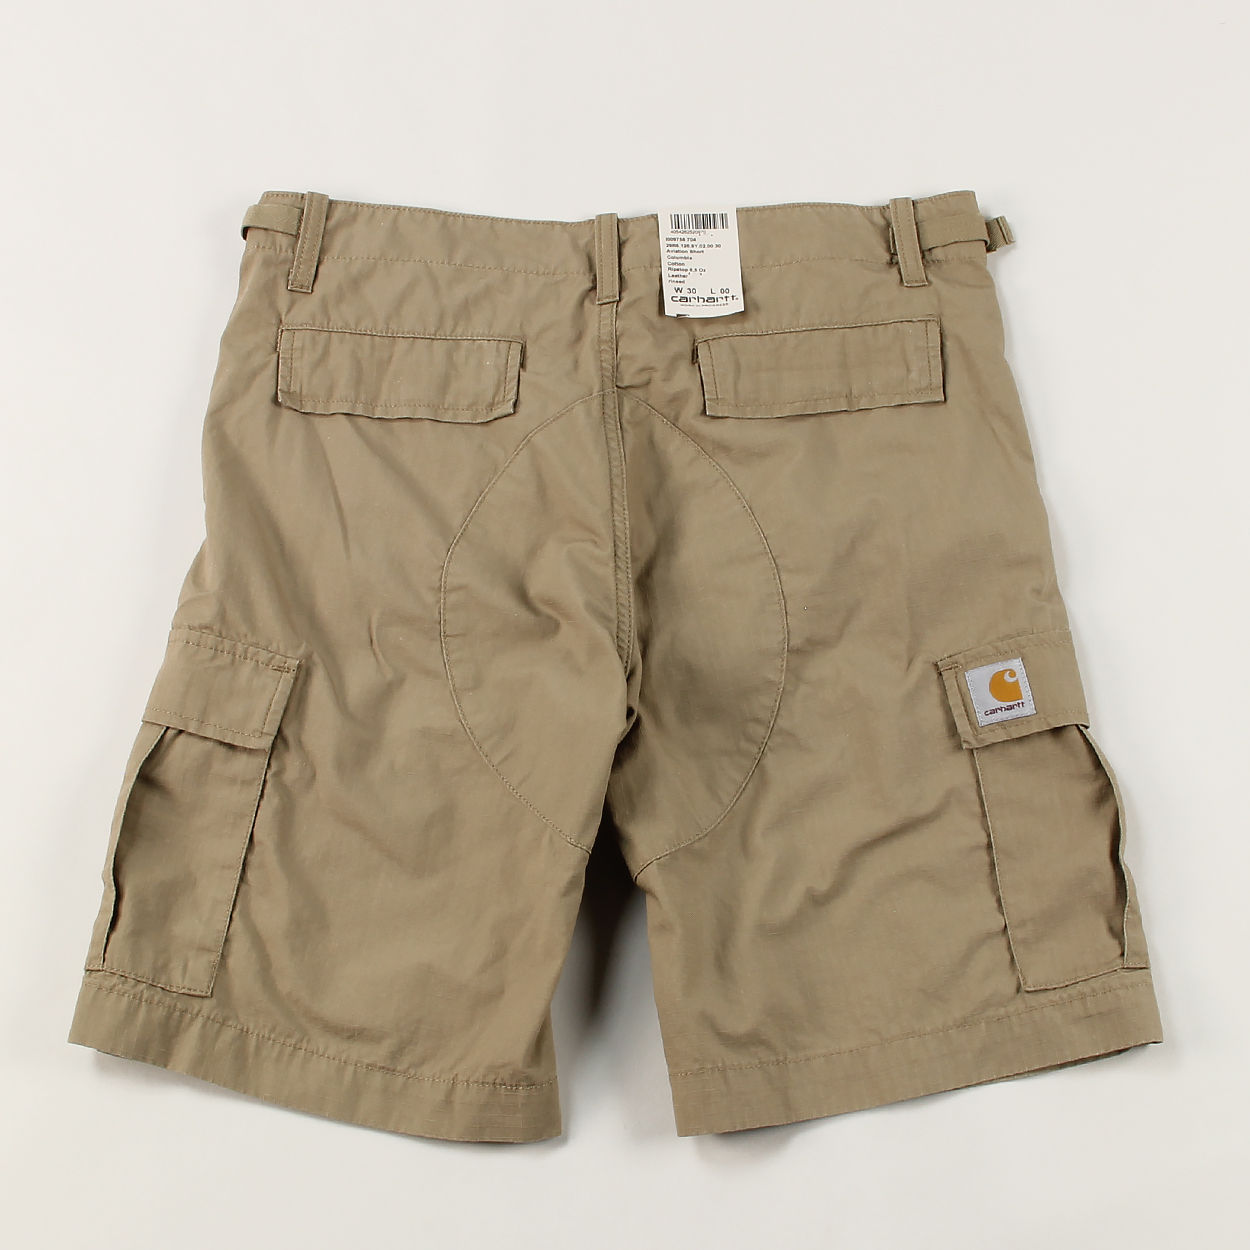 d90e42c732 A pair of super tough and durable shorts made from 100% cotton in a ripstop  weave. They have a six pocket design and a slim fit with a low waist.  Carhartt's ...